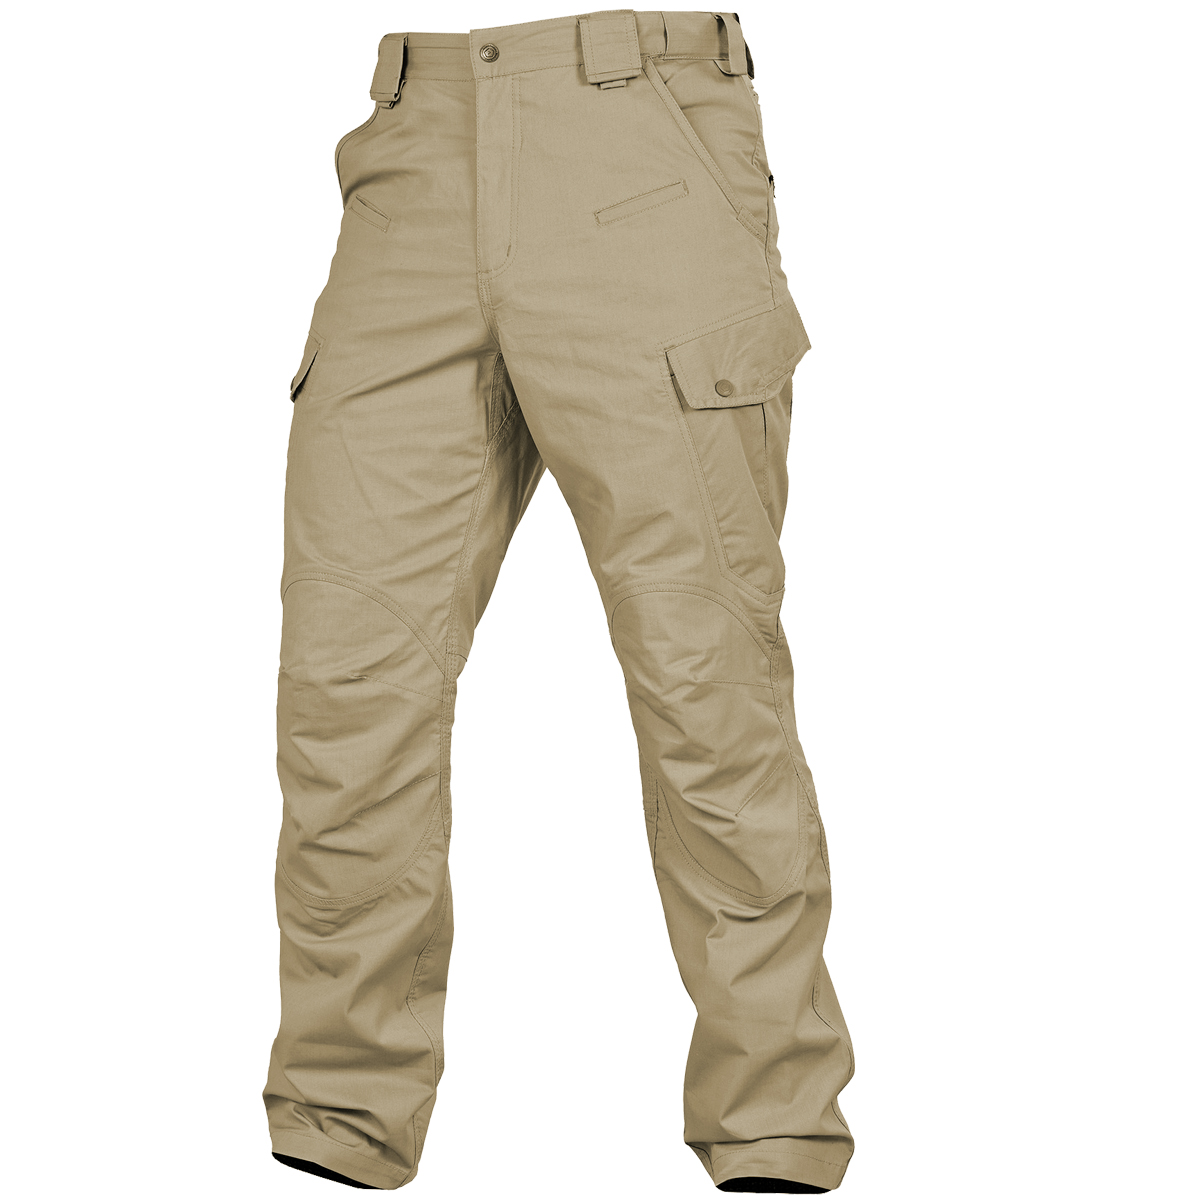 Find great deals on eBay for khaki military pants. Shop with confidence.